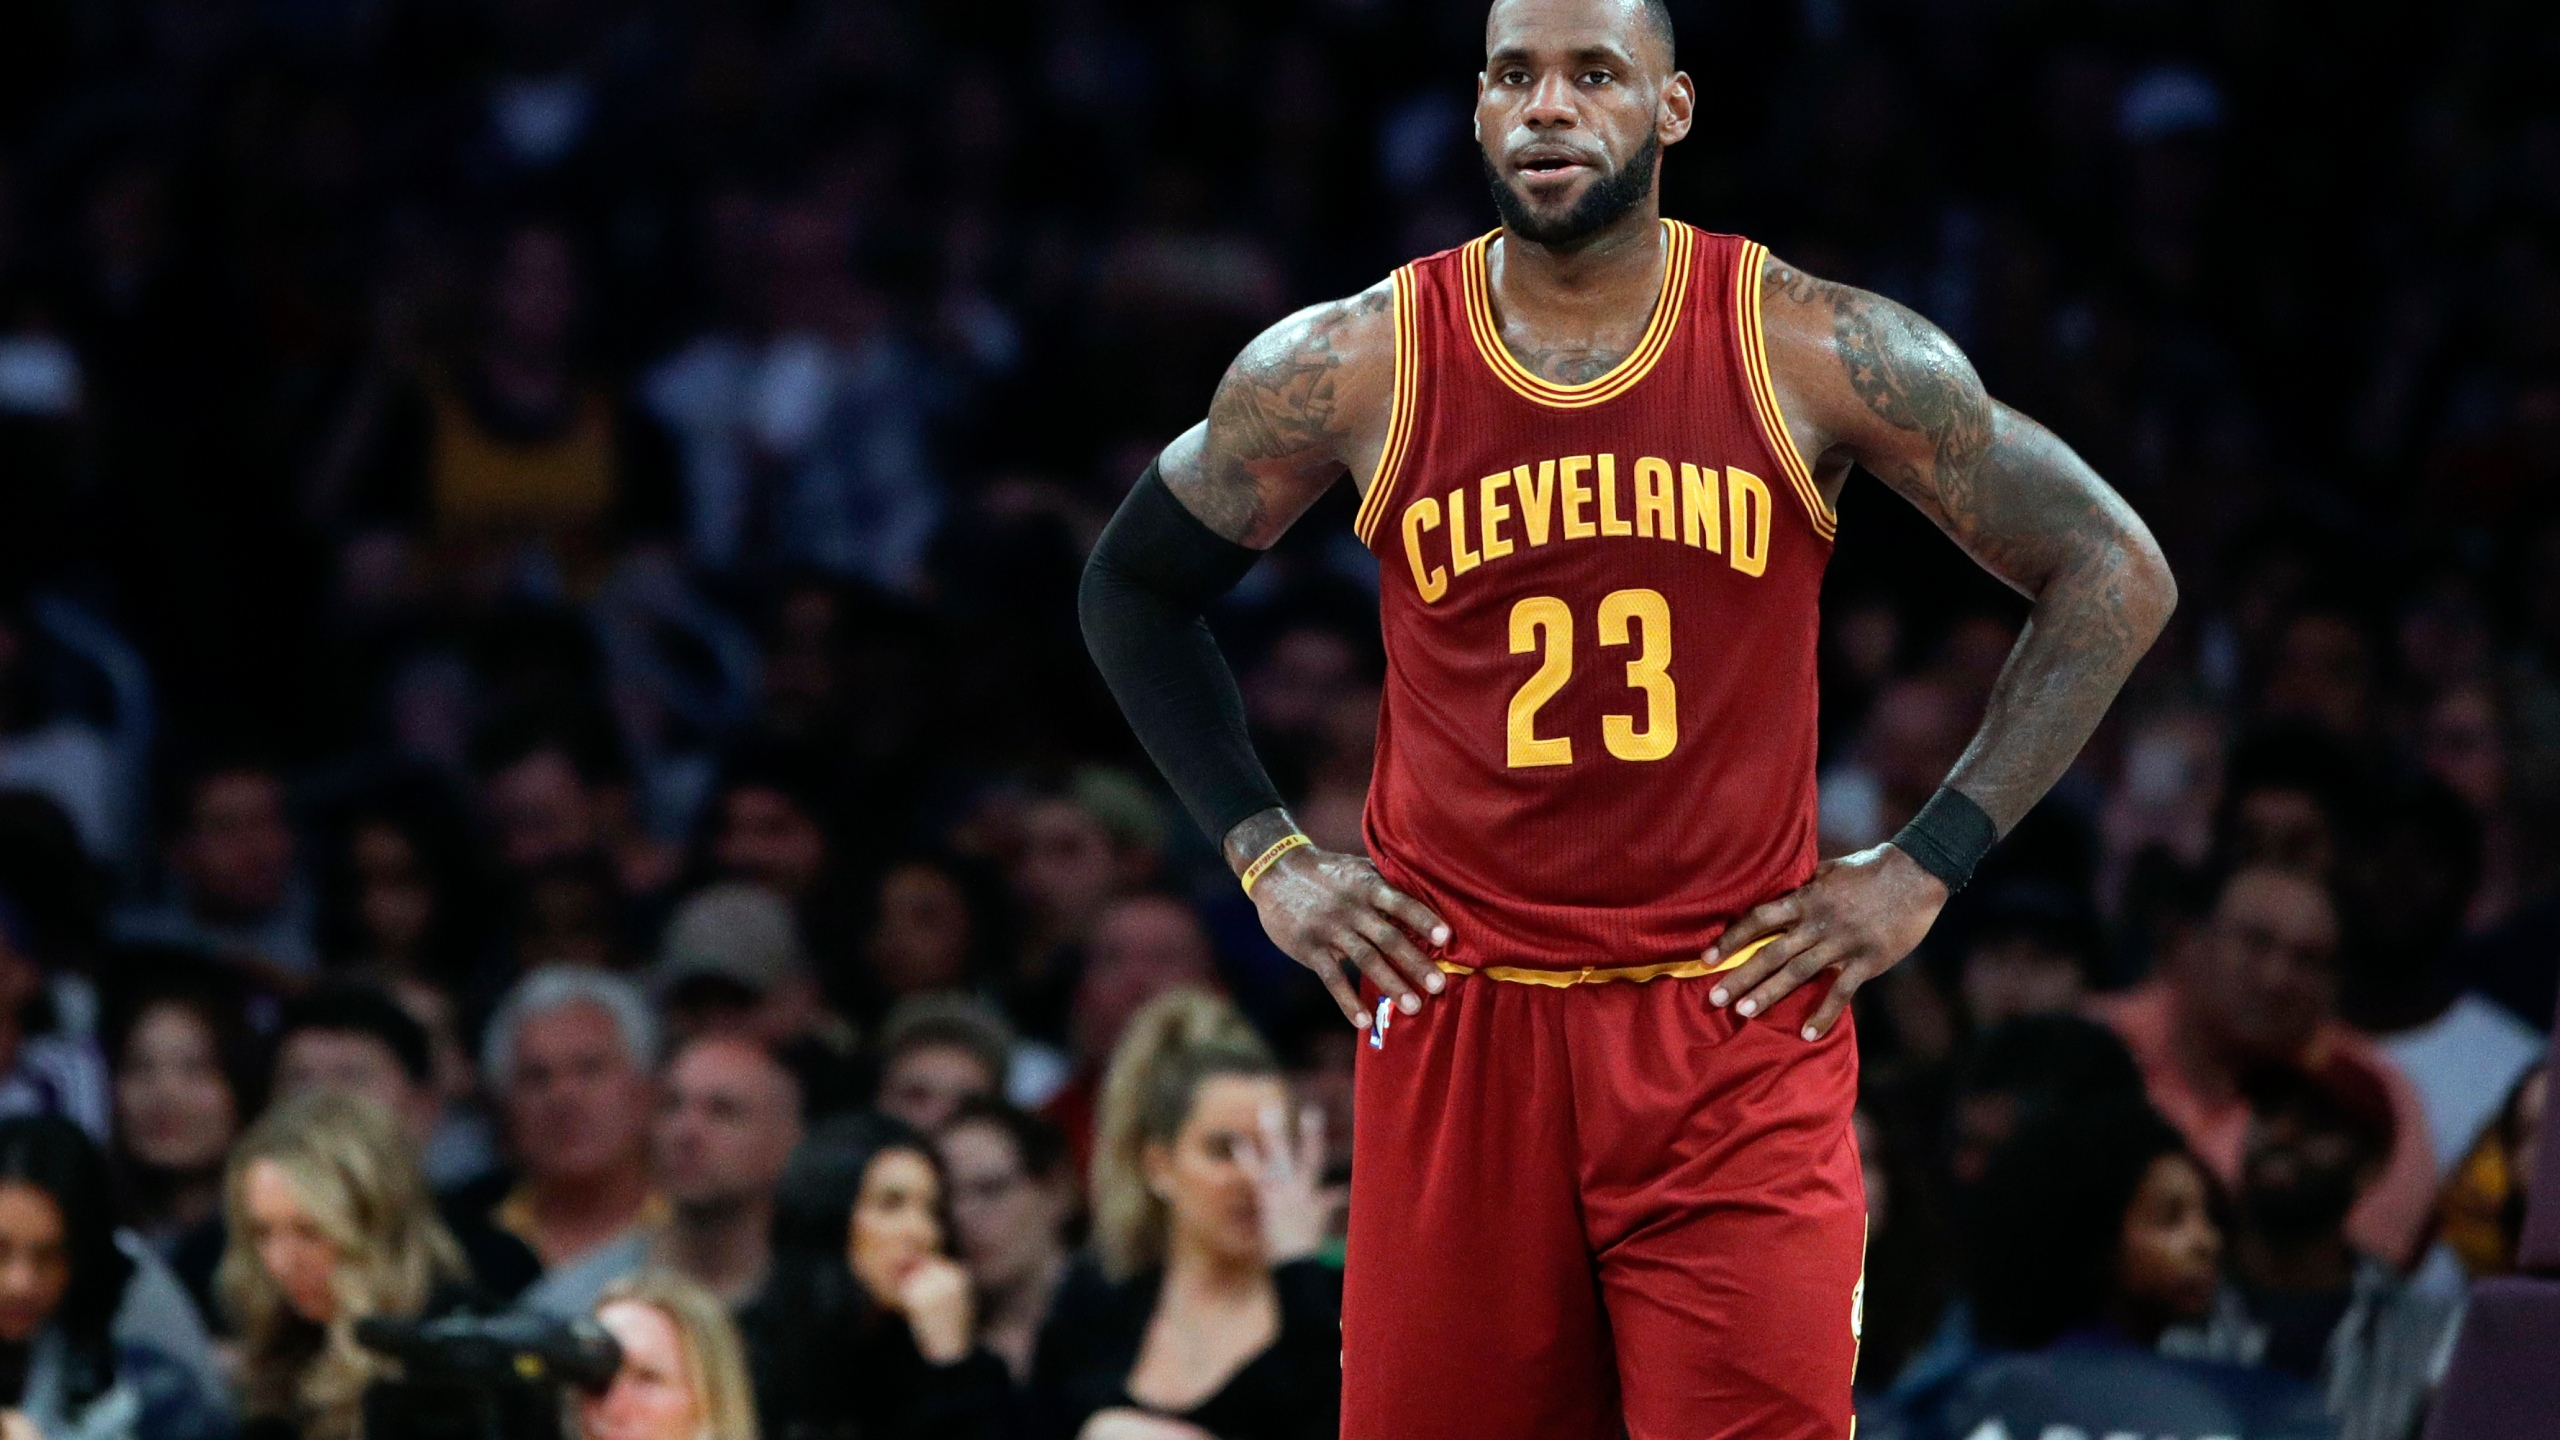 NBA_Free_Agency_LeBron's_Options_Basketall_18644-159532.jpg56083294